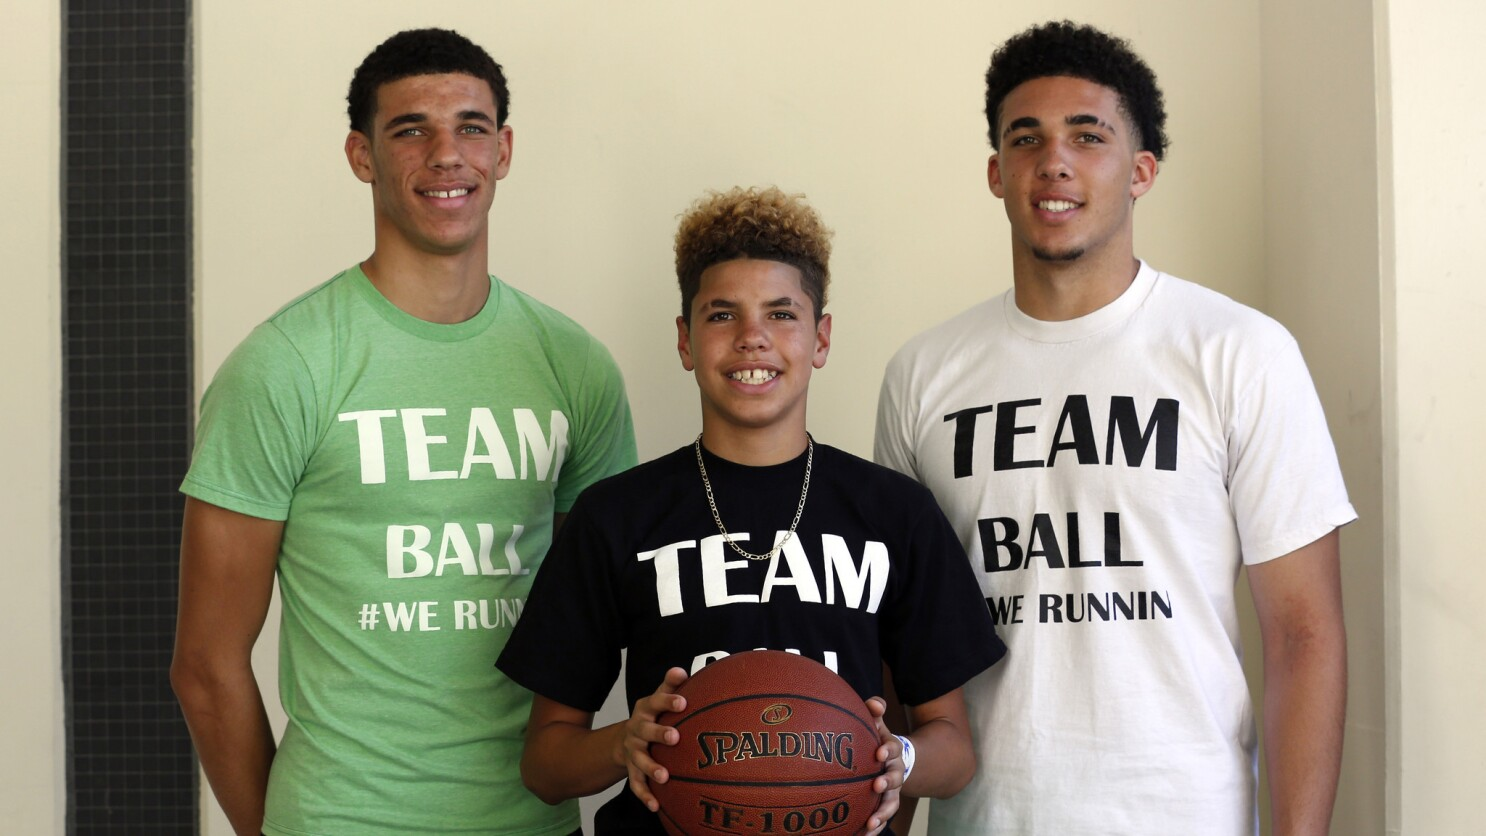 Column Ball Brothers Stole The Show During The Last Decade Los Angeles Times